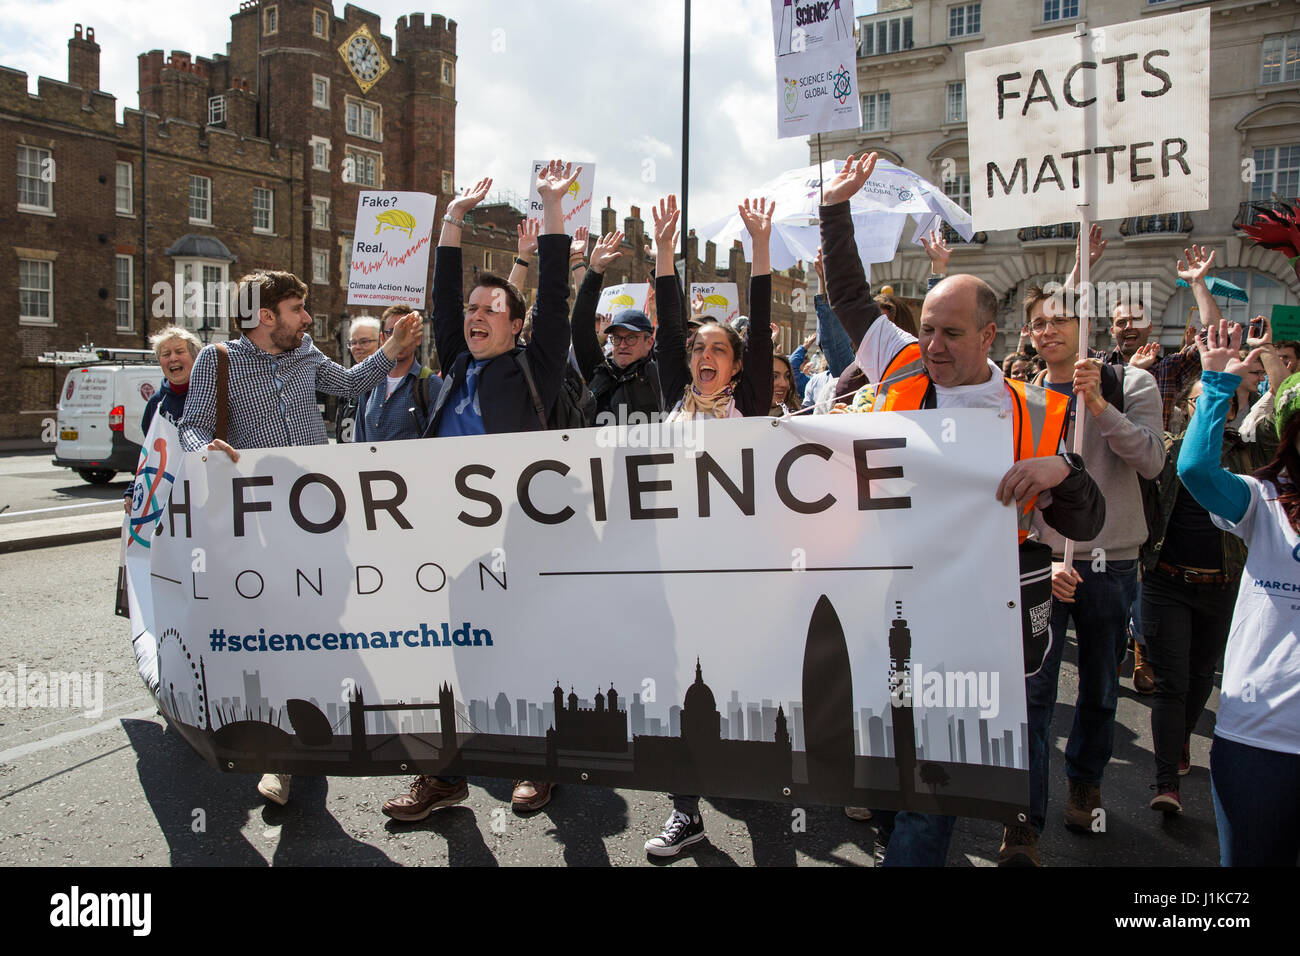 London, UK. 22nd April, 2017. Scientists march through central London on the 'March for Science' as part of a global Stock Photo